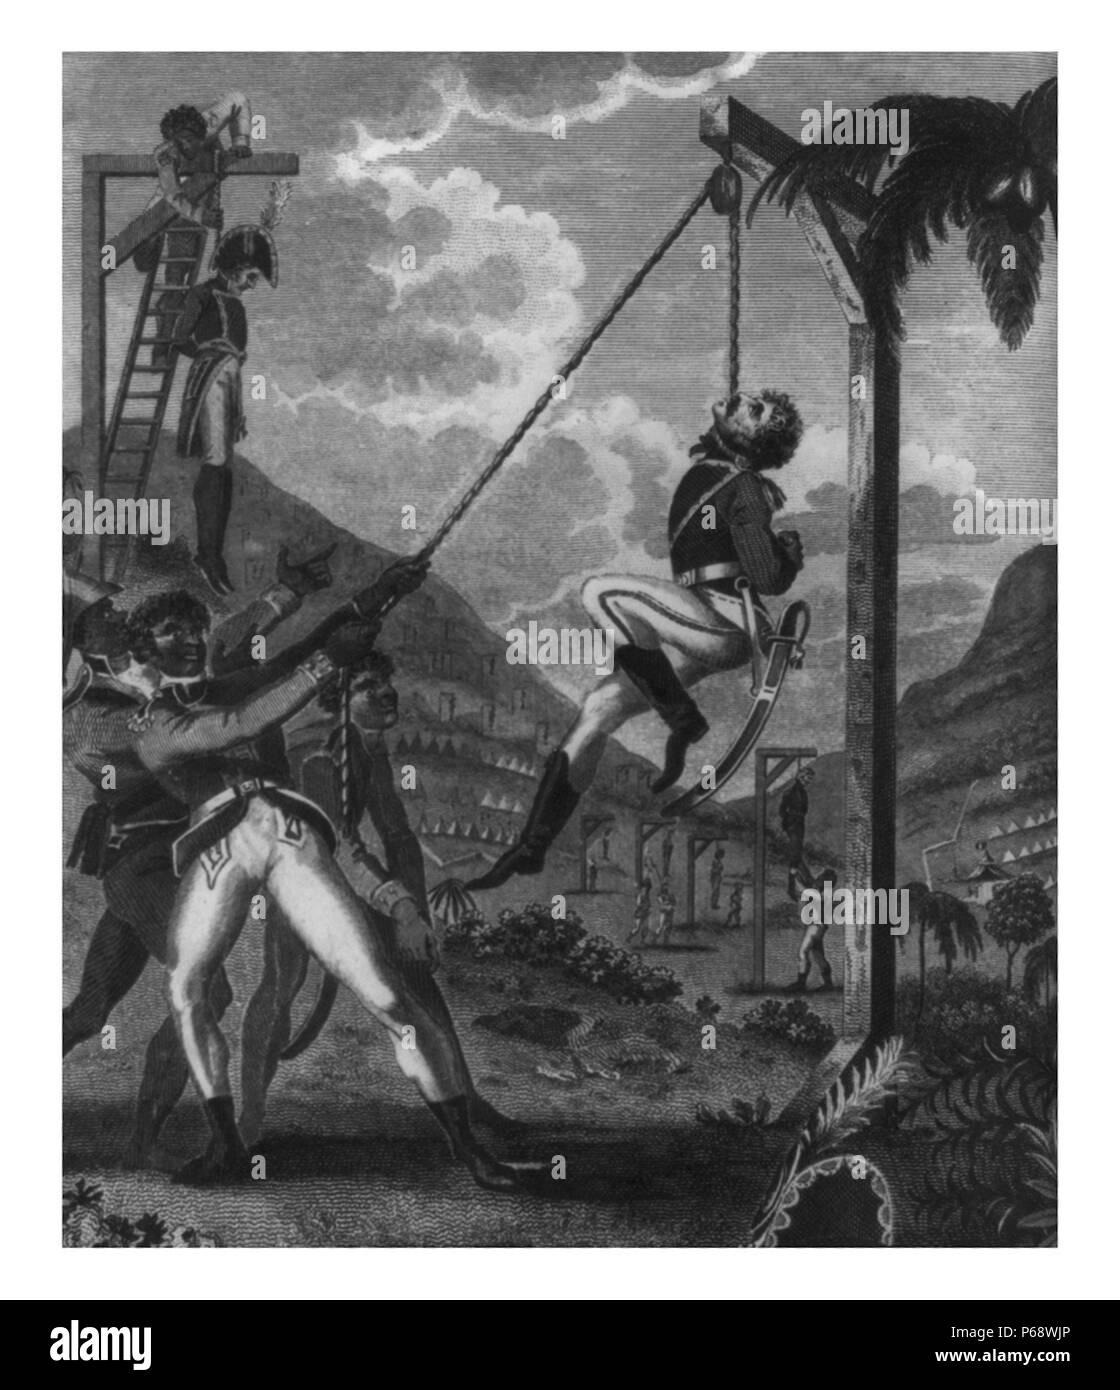 Haiti; Revolution, 1791-1804. Haitians hanging French officers; revenge taken by the Black Army for the cruelties practised by the French - Stock Image